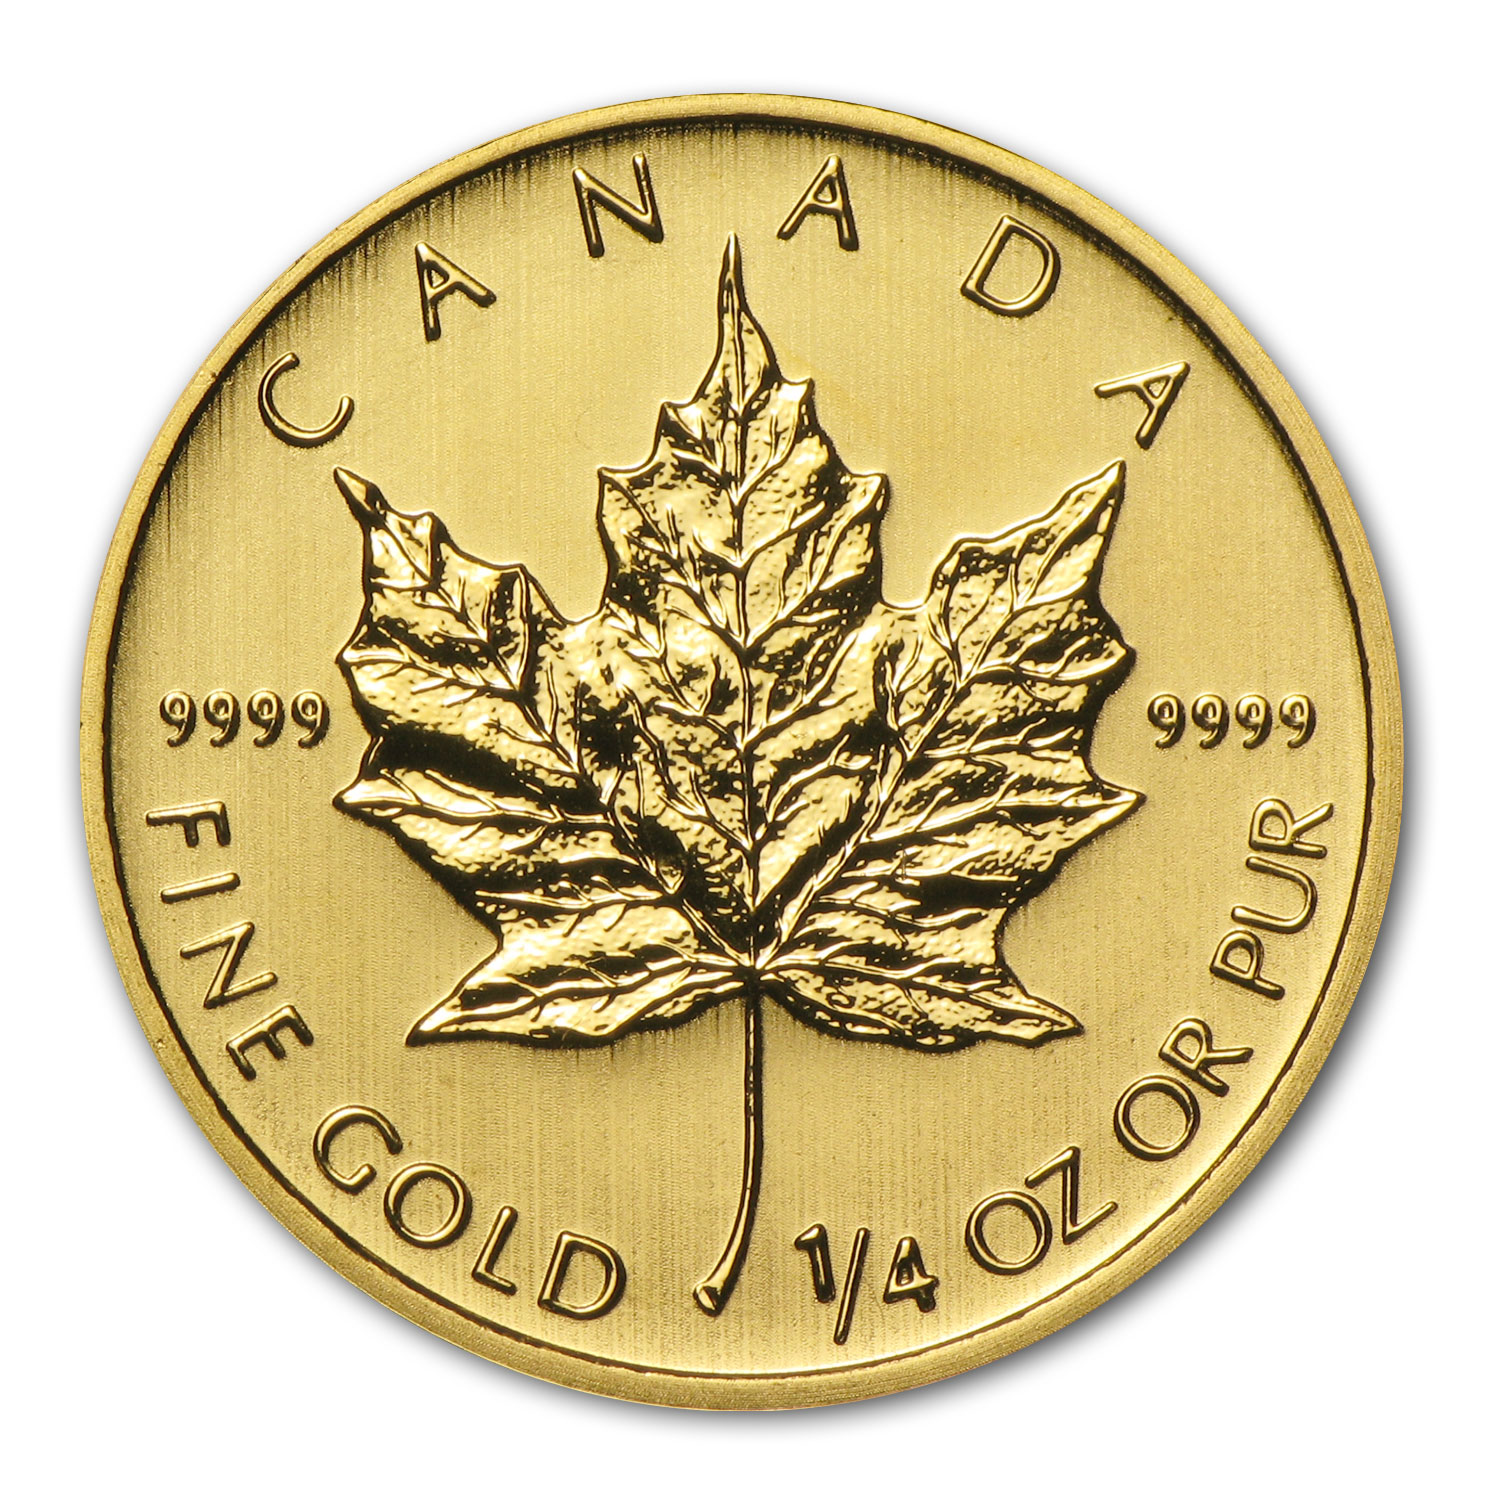 2014 1/4 oz Gold Canadian Maple Leaf BU